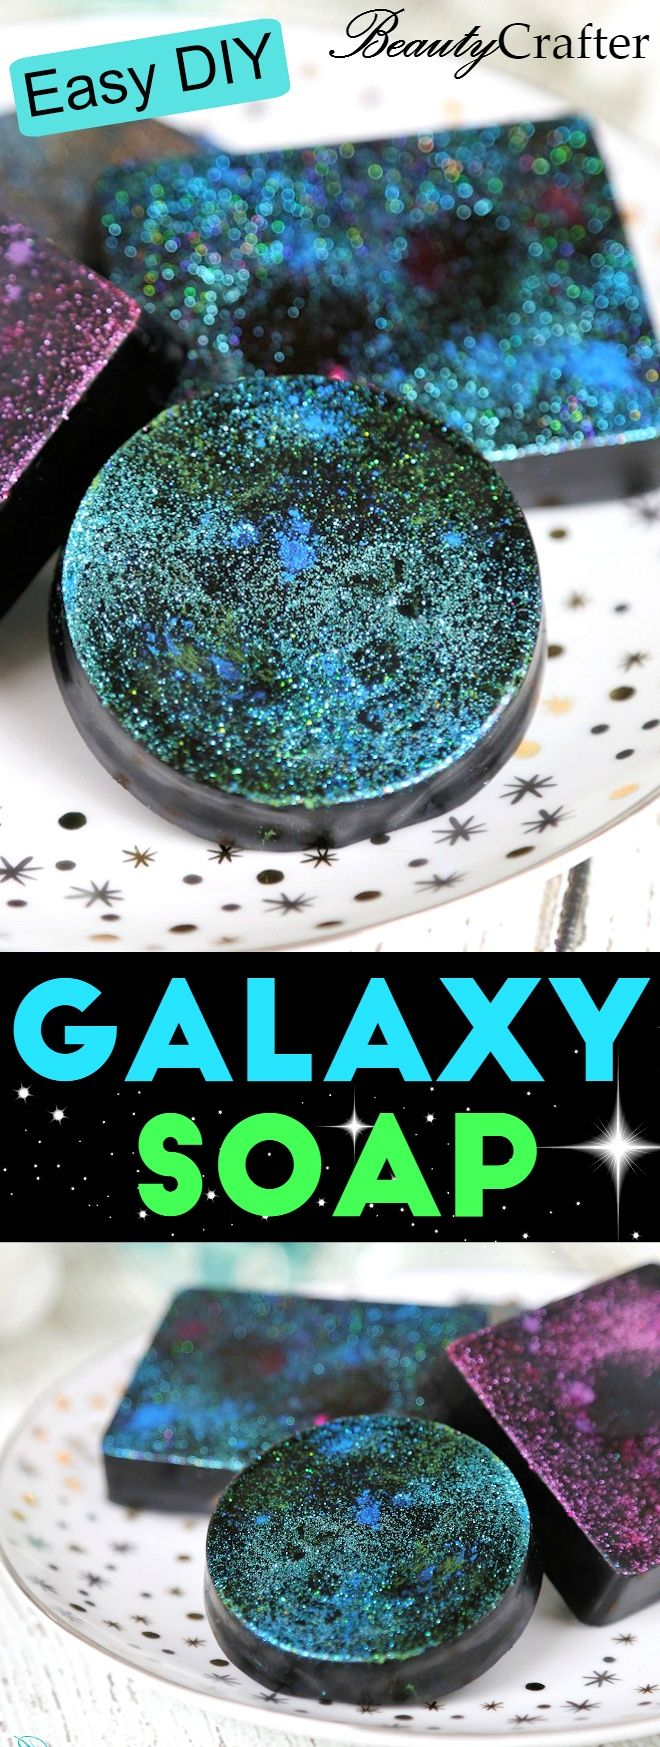 DIY Galaxy Soap: Cosmic Charcoal Soap Recipe